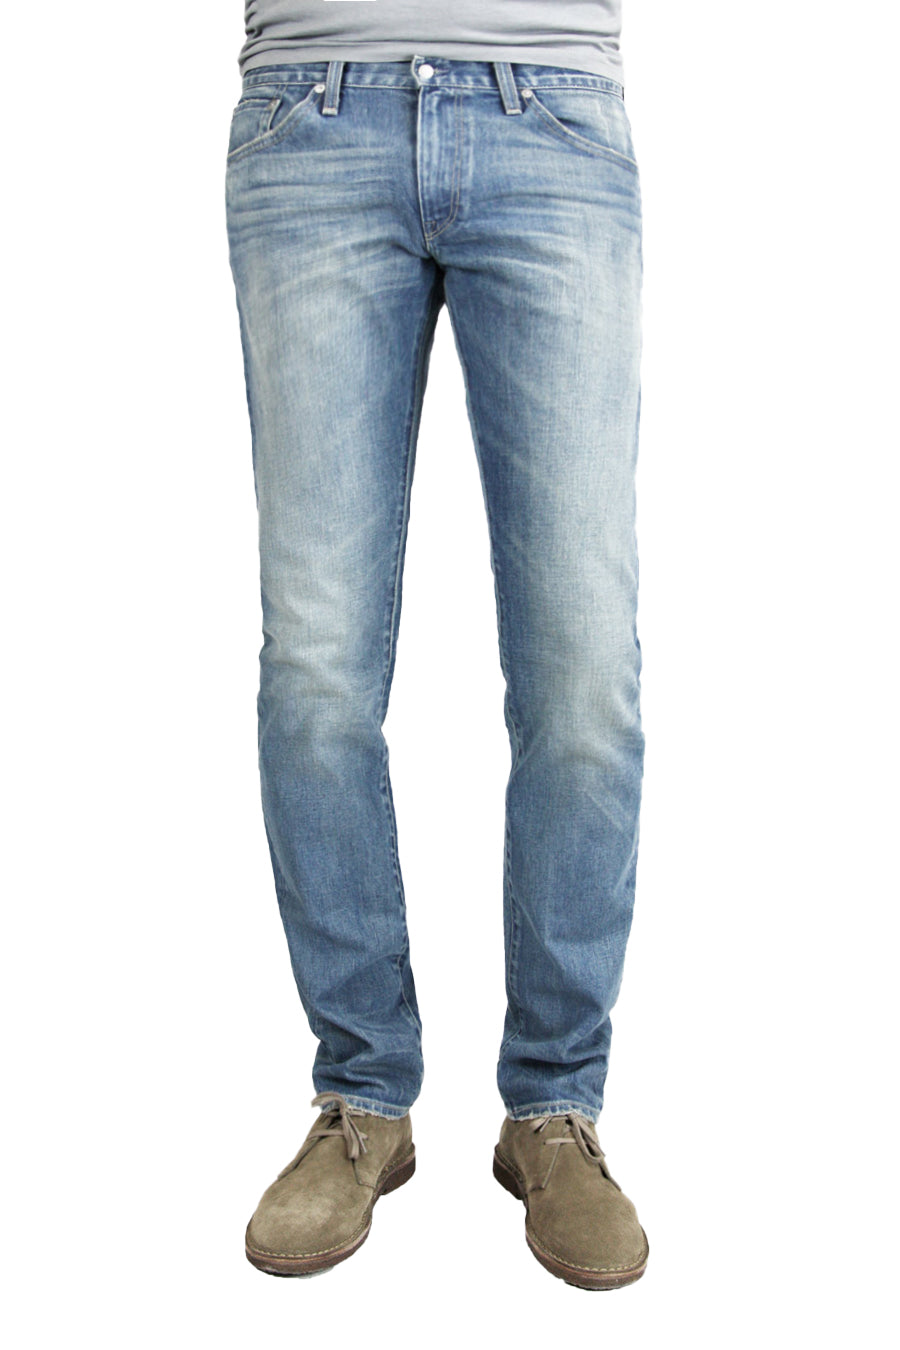 S.M.N Studio's Finn in Western Men's Jeans - Tapered Slim Comfort Stretch Denim in vintage light wash denim accented with fading and whiskering